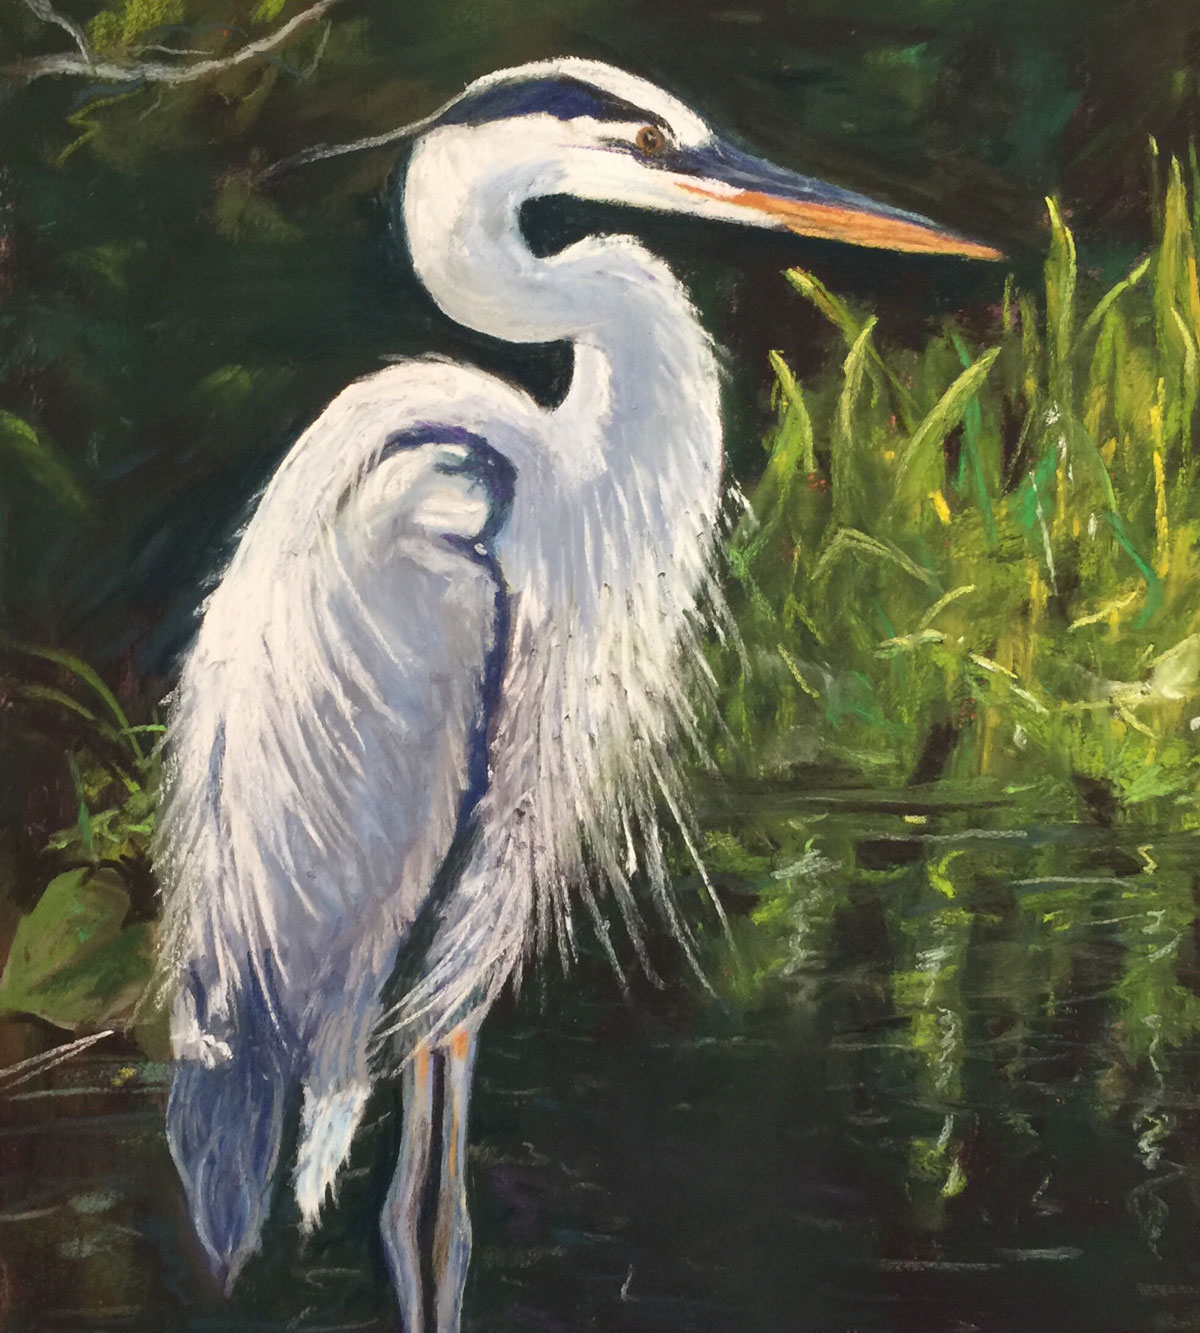 Pastel drawing of Great Blue Heron standing at the edge of a body of water surrounded by grass.